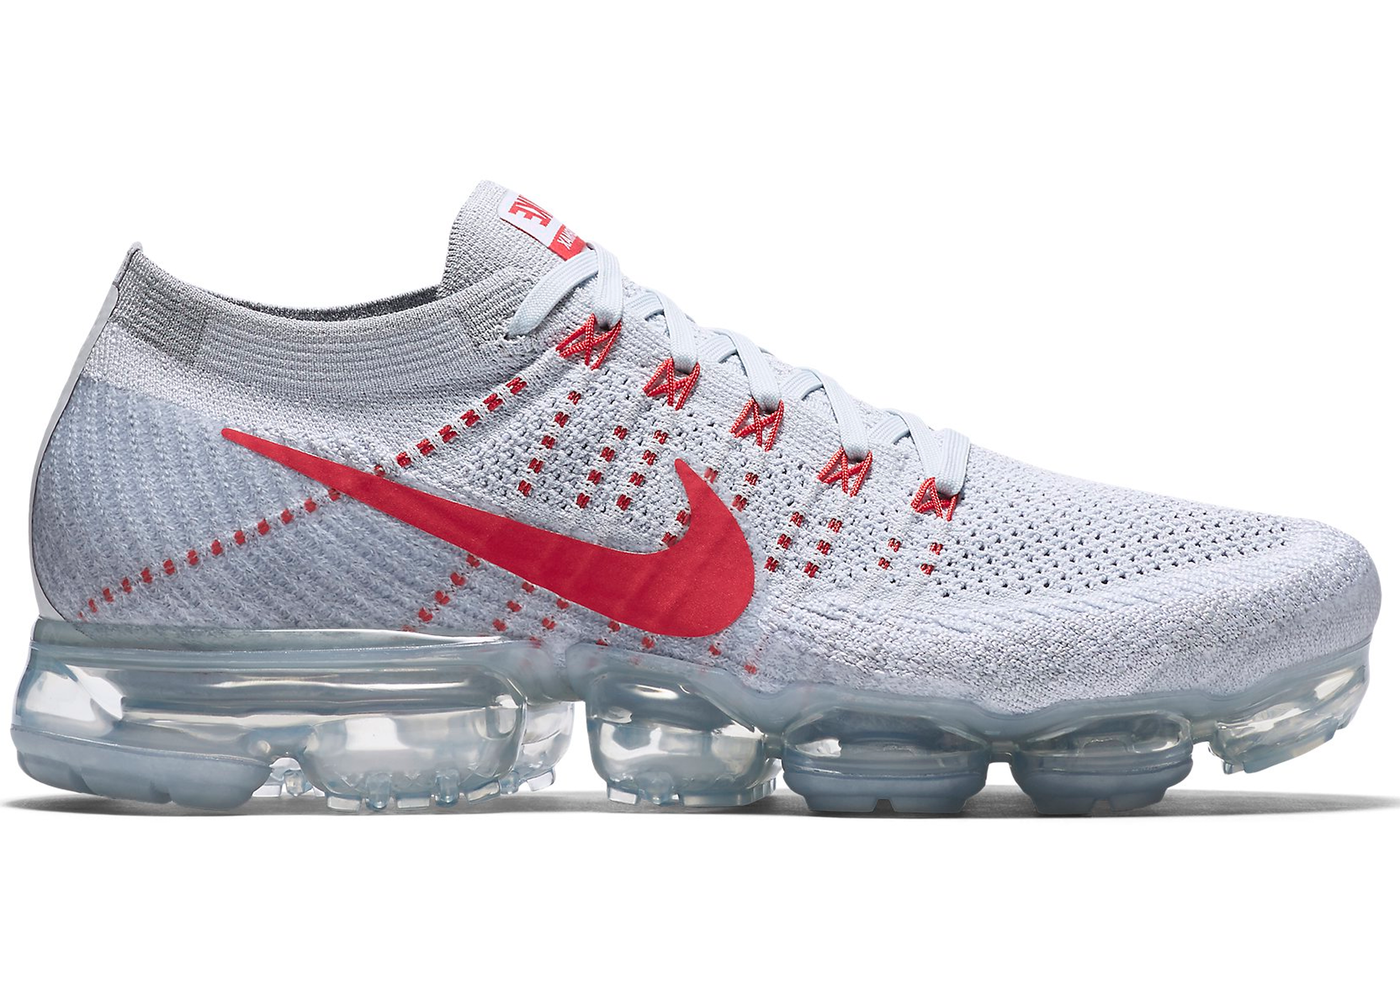 Nike VaporMax Interview What To Expect, Upcoming Colourways